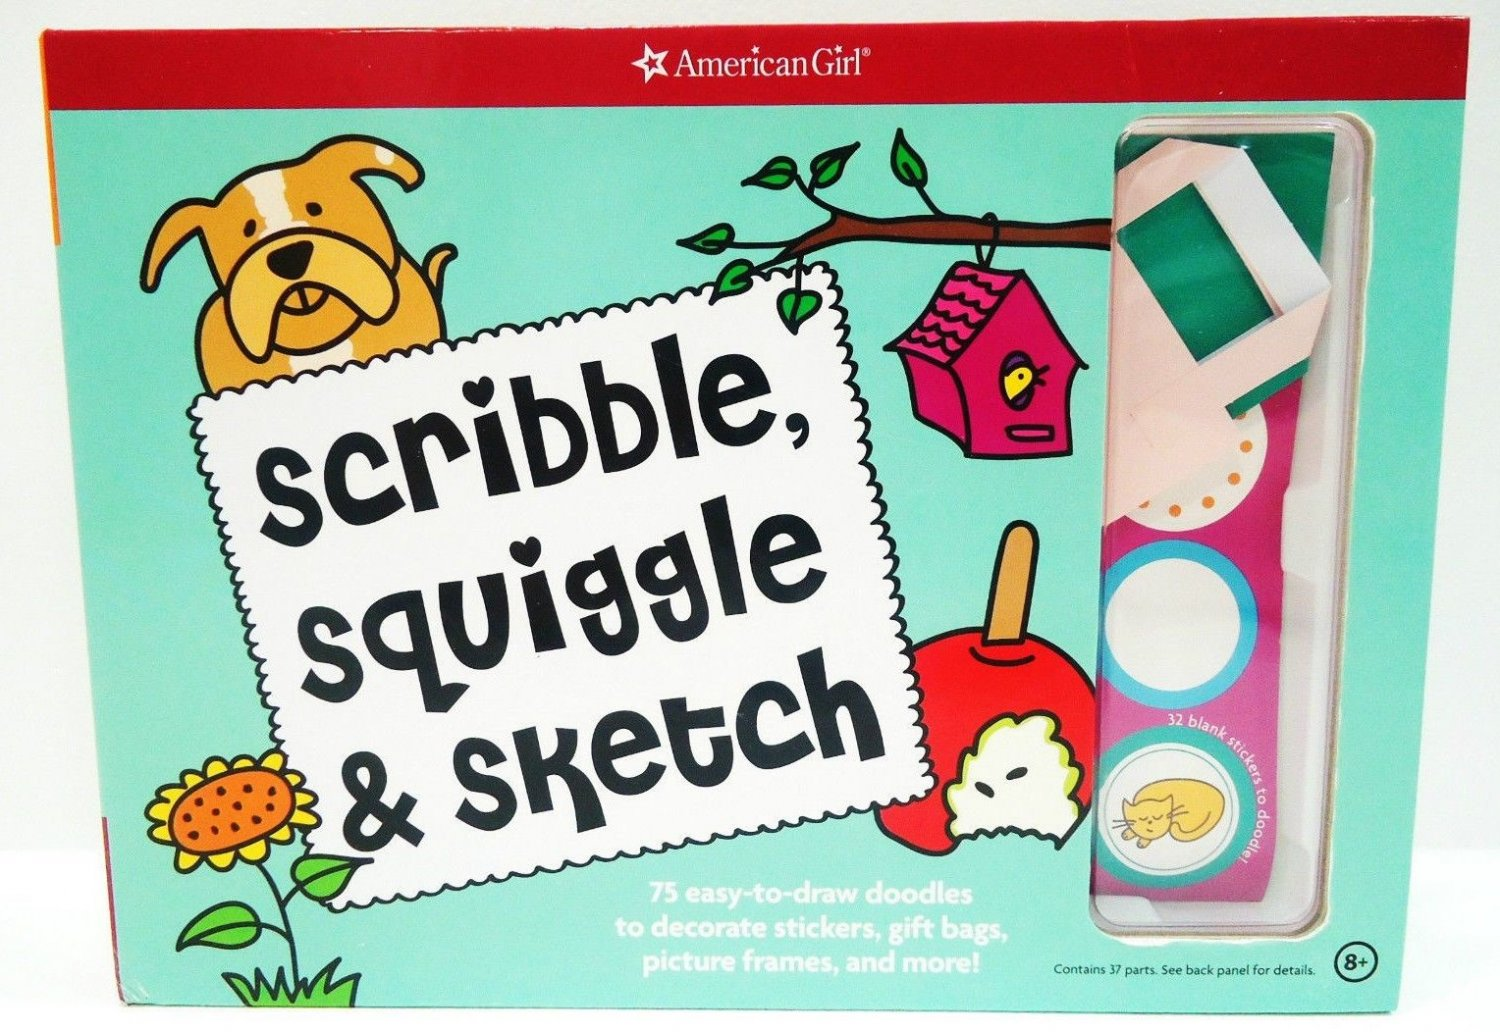 AMERICAN GIRL - SCRIBBLE - SQUIGGLE - SKETCH - BOOK - NEW - ARTS - CRAFT - KIT